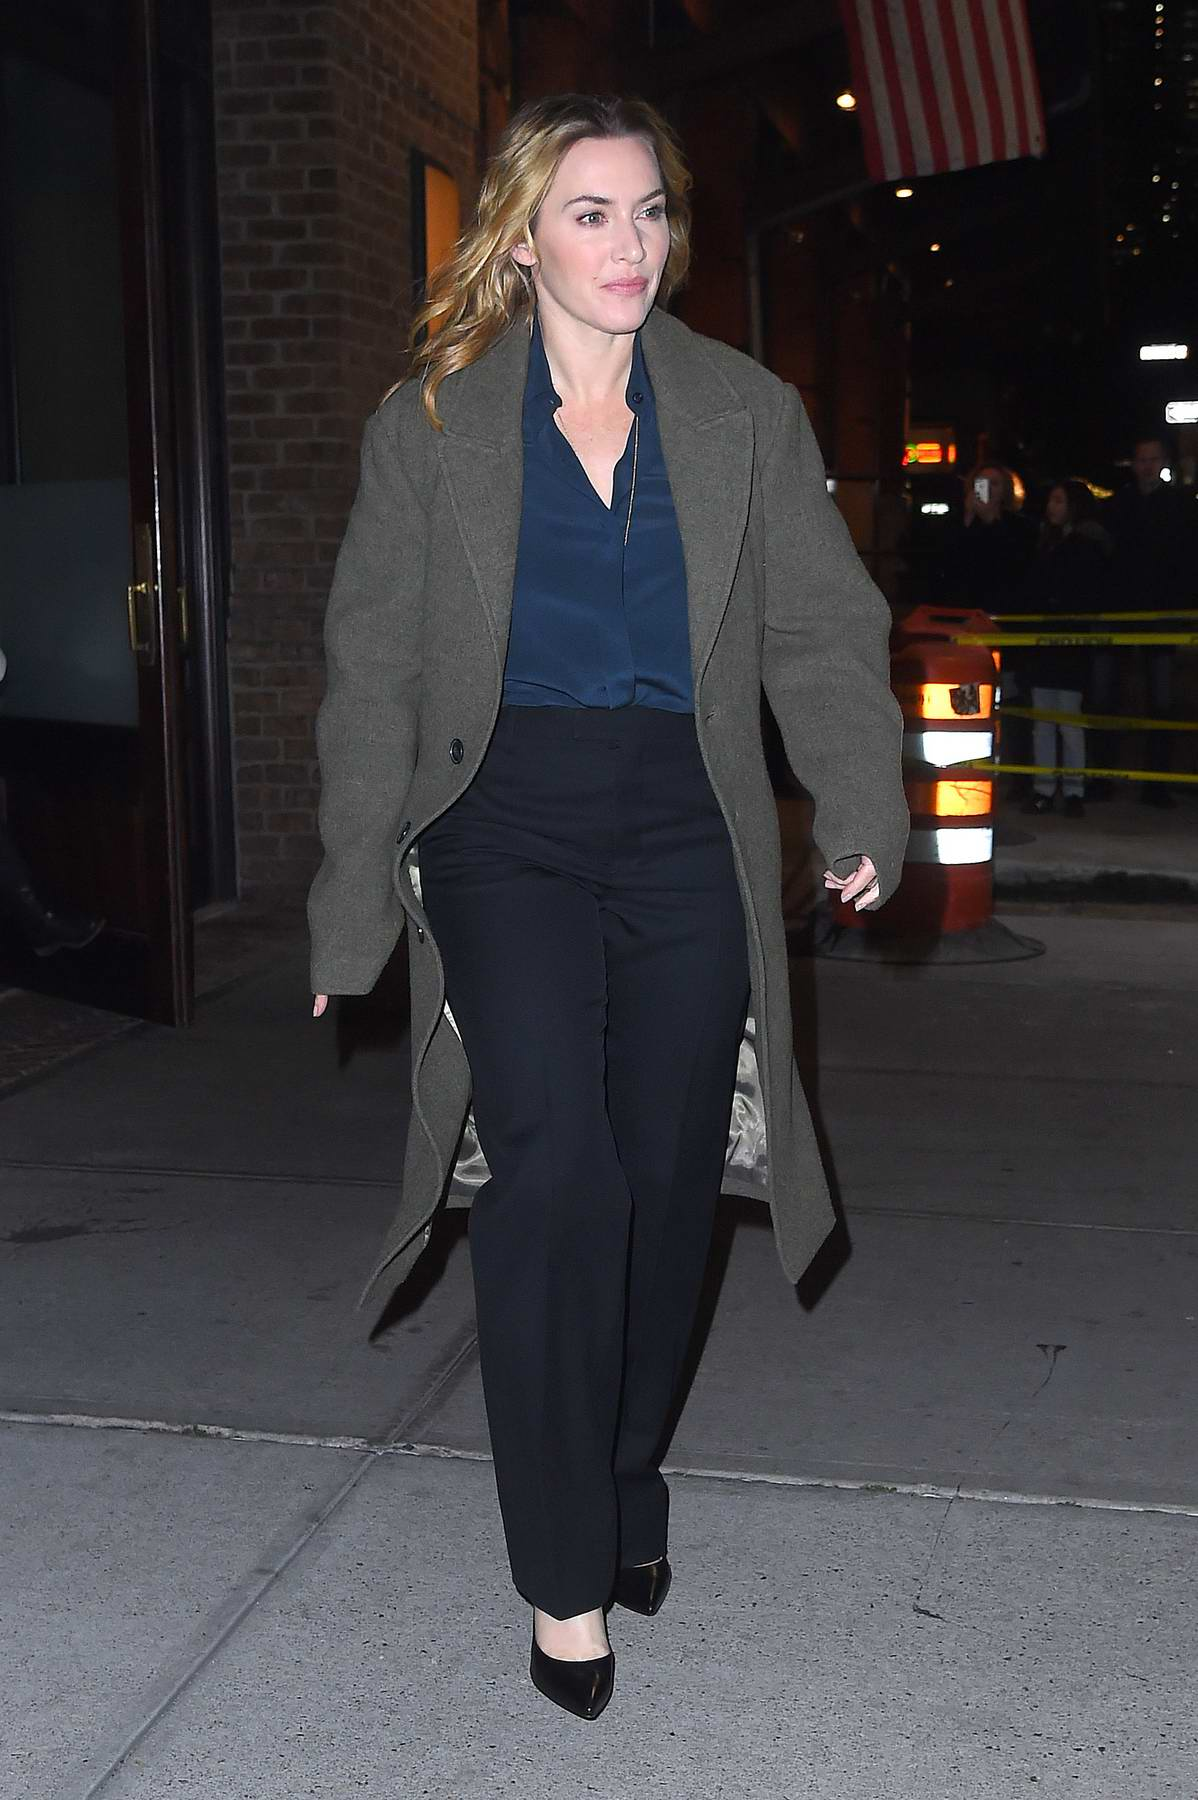 Kate Winslet leaving her hotel in New York City